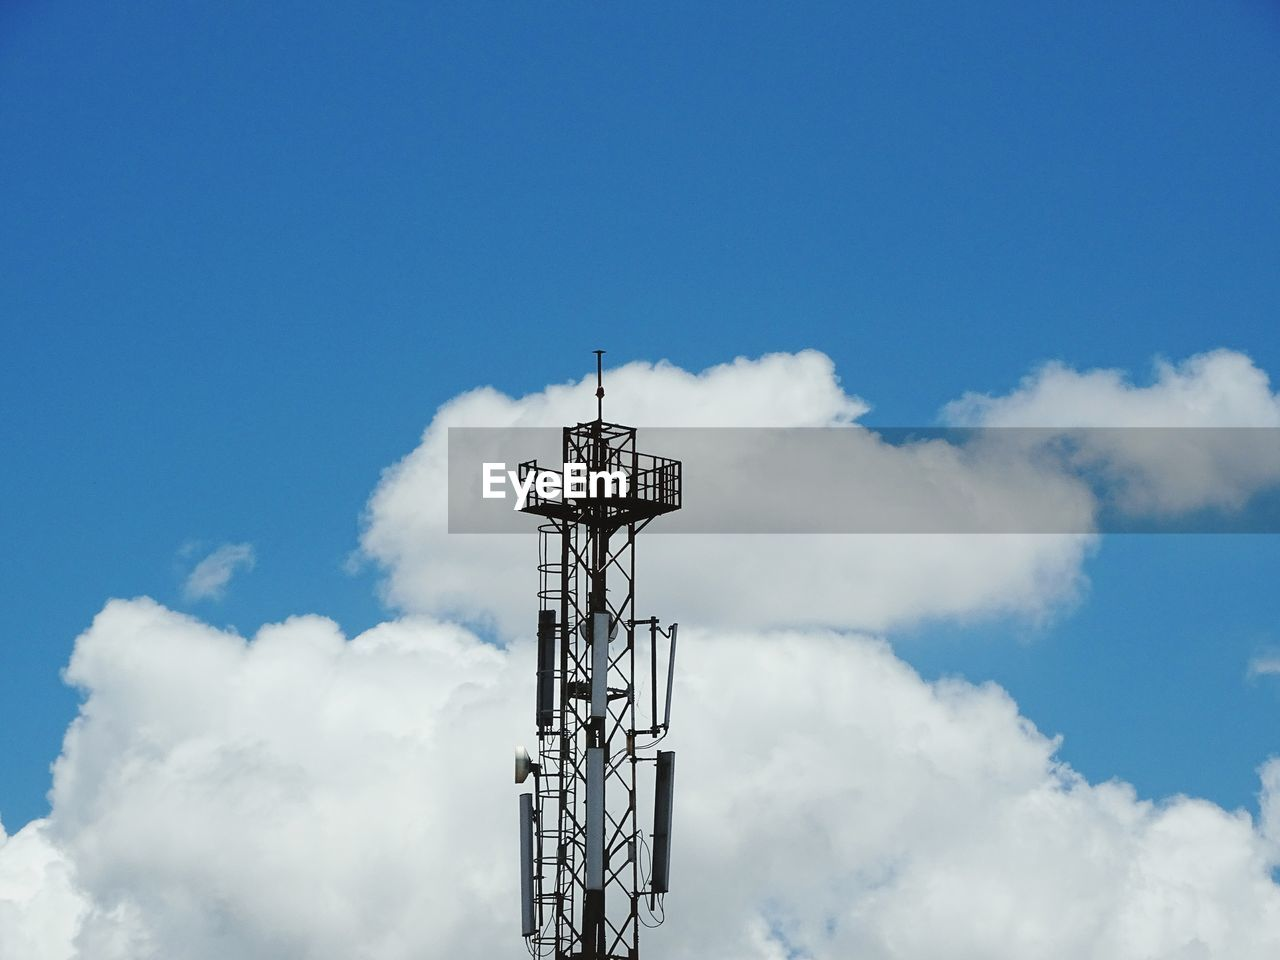 sky, cloud - sky, low angle view, technology, no people, day, connection, communication, nature, blue, outdoors, built structure, tower, antenna - aerial, architecture, wireless technology, electricity, metal, copy space, global communications, power supply, electrical equipment